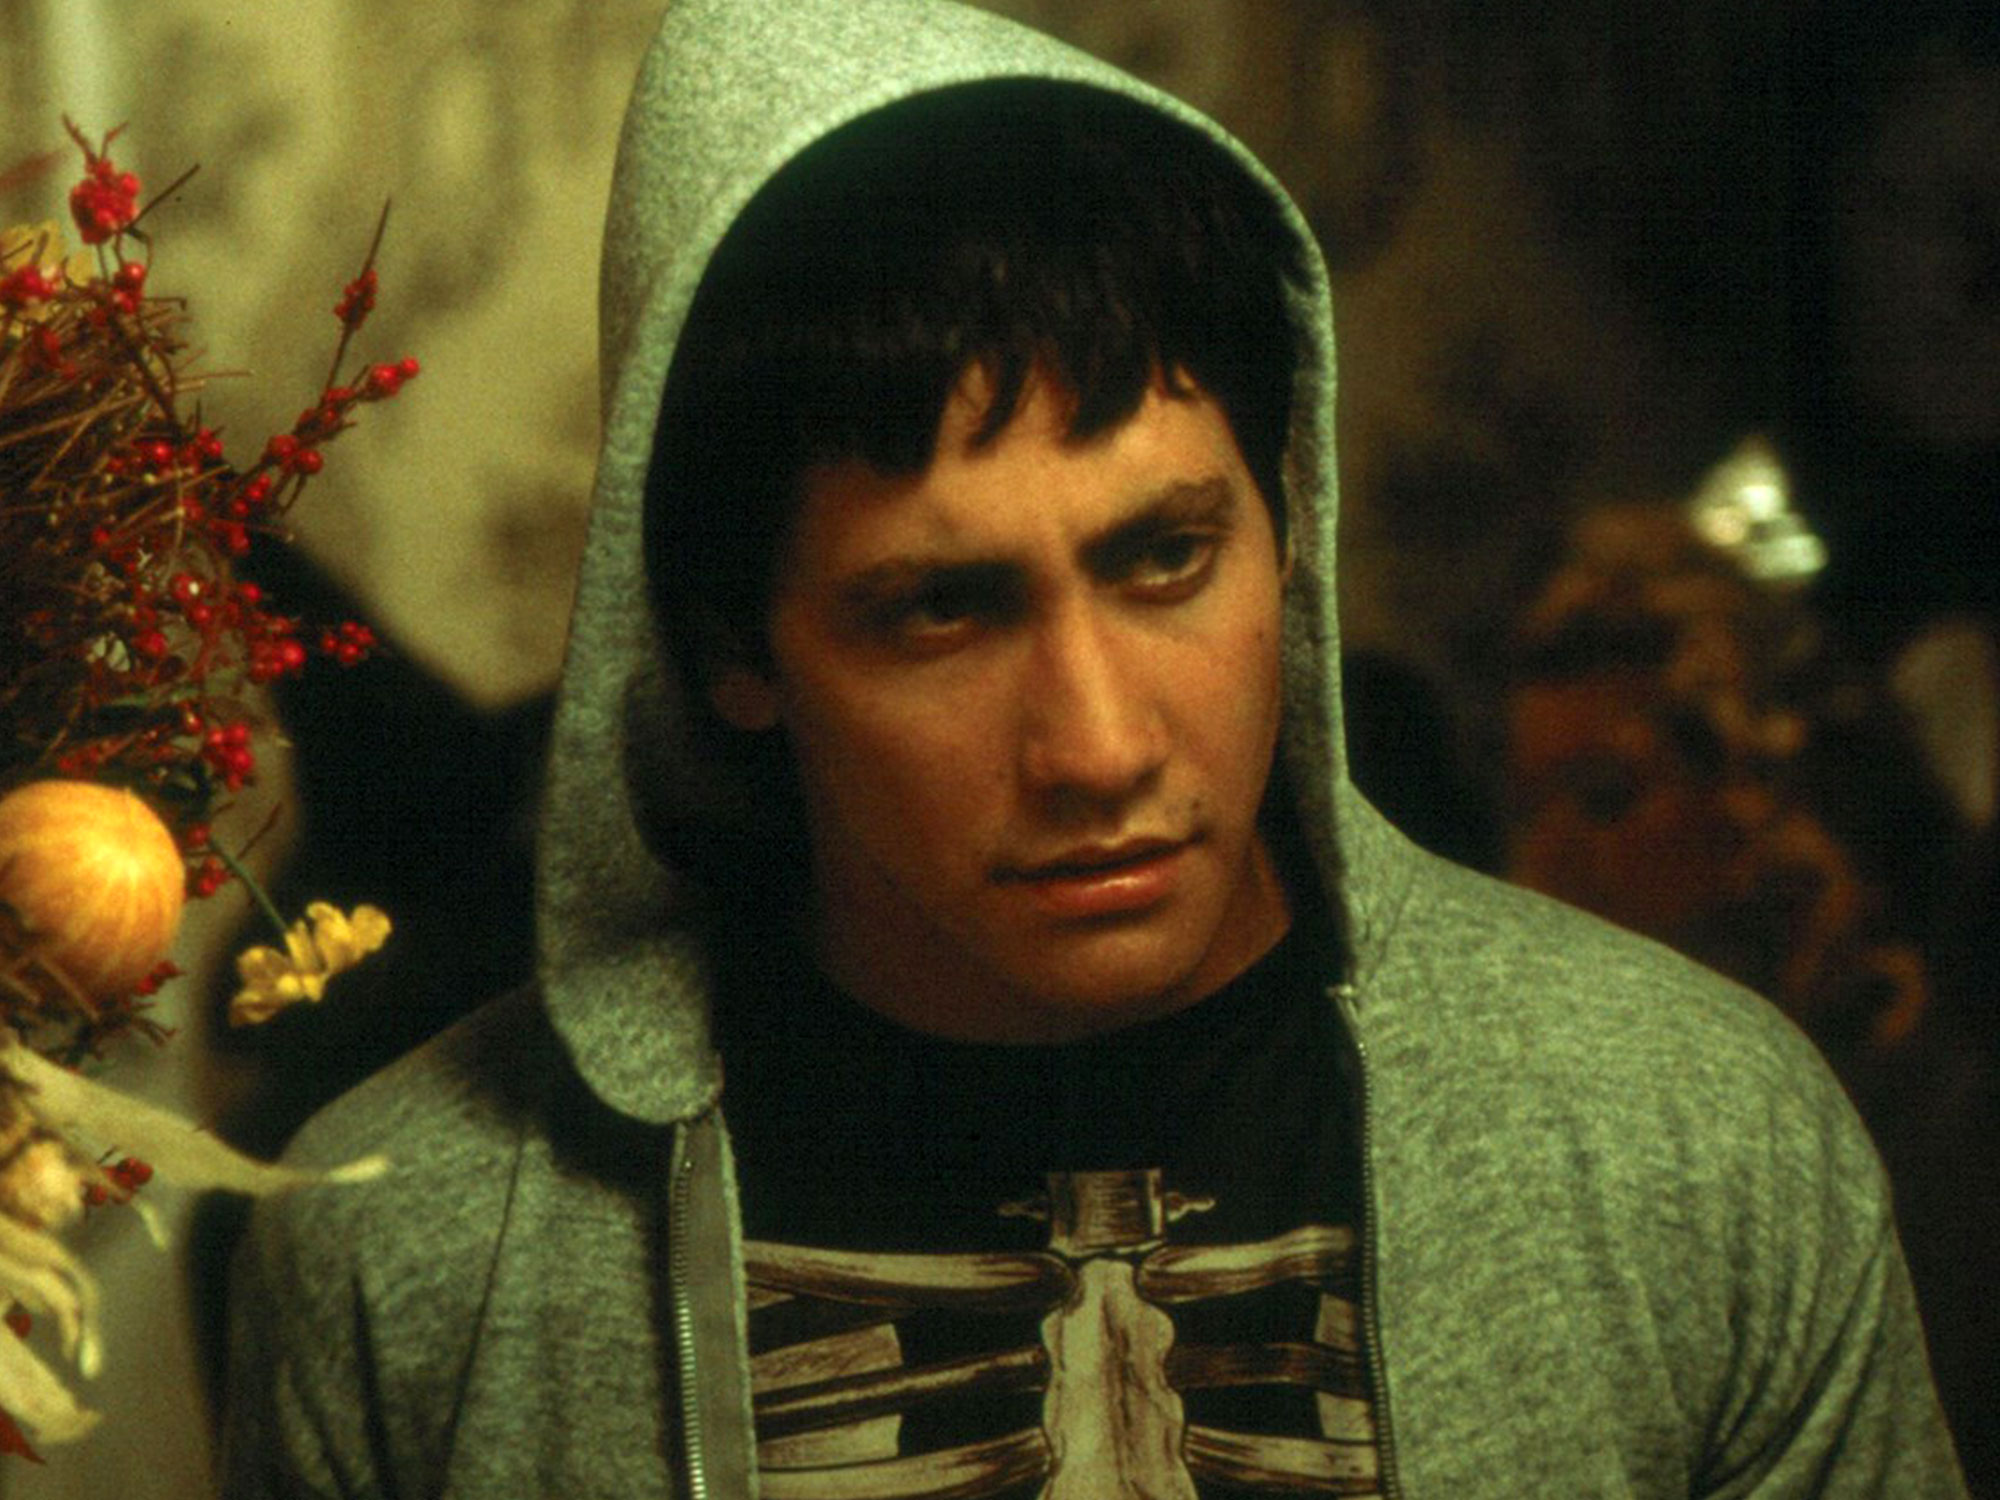 Clásicos online: crítica de «Donnie Darko», de Richard Kelly (Mubi/Amazon Prime)